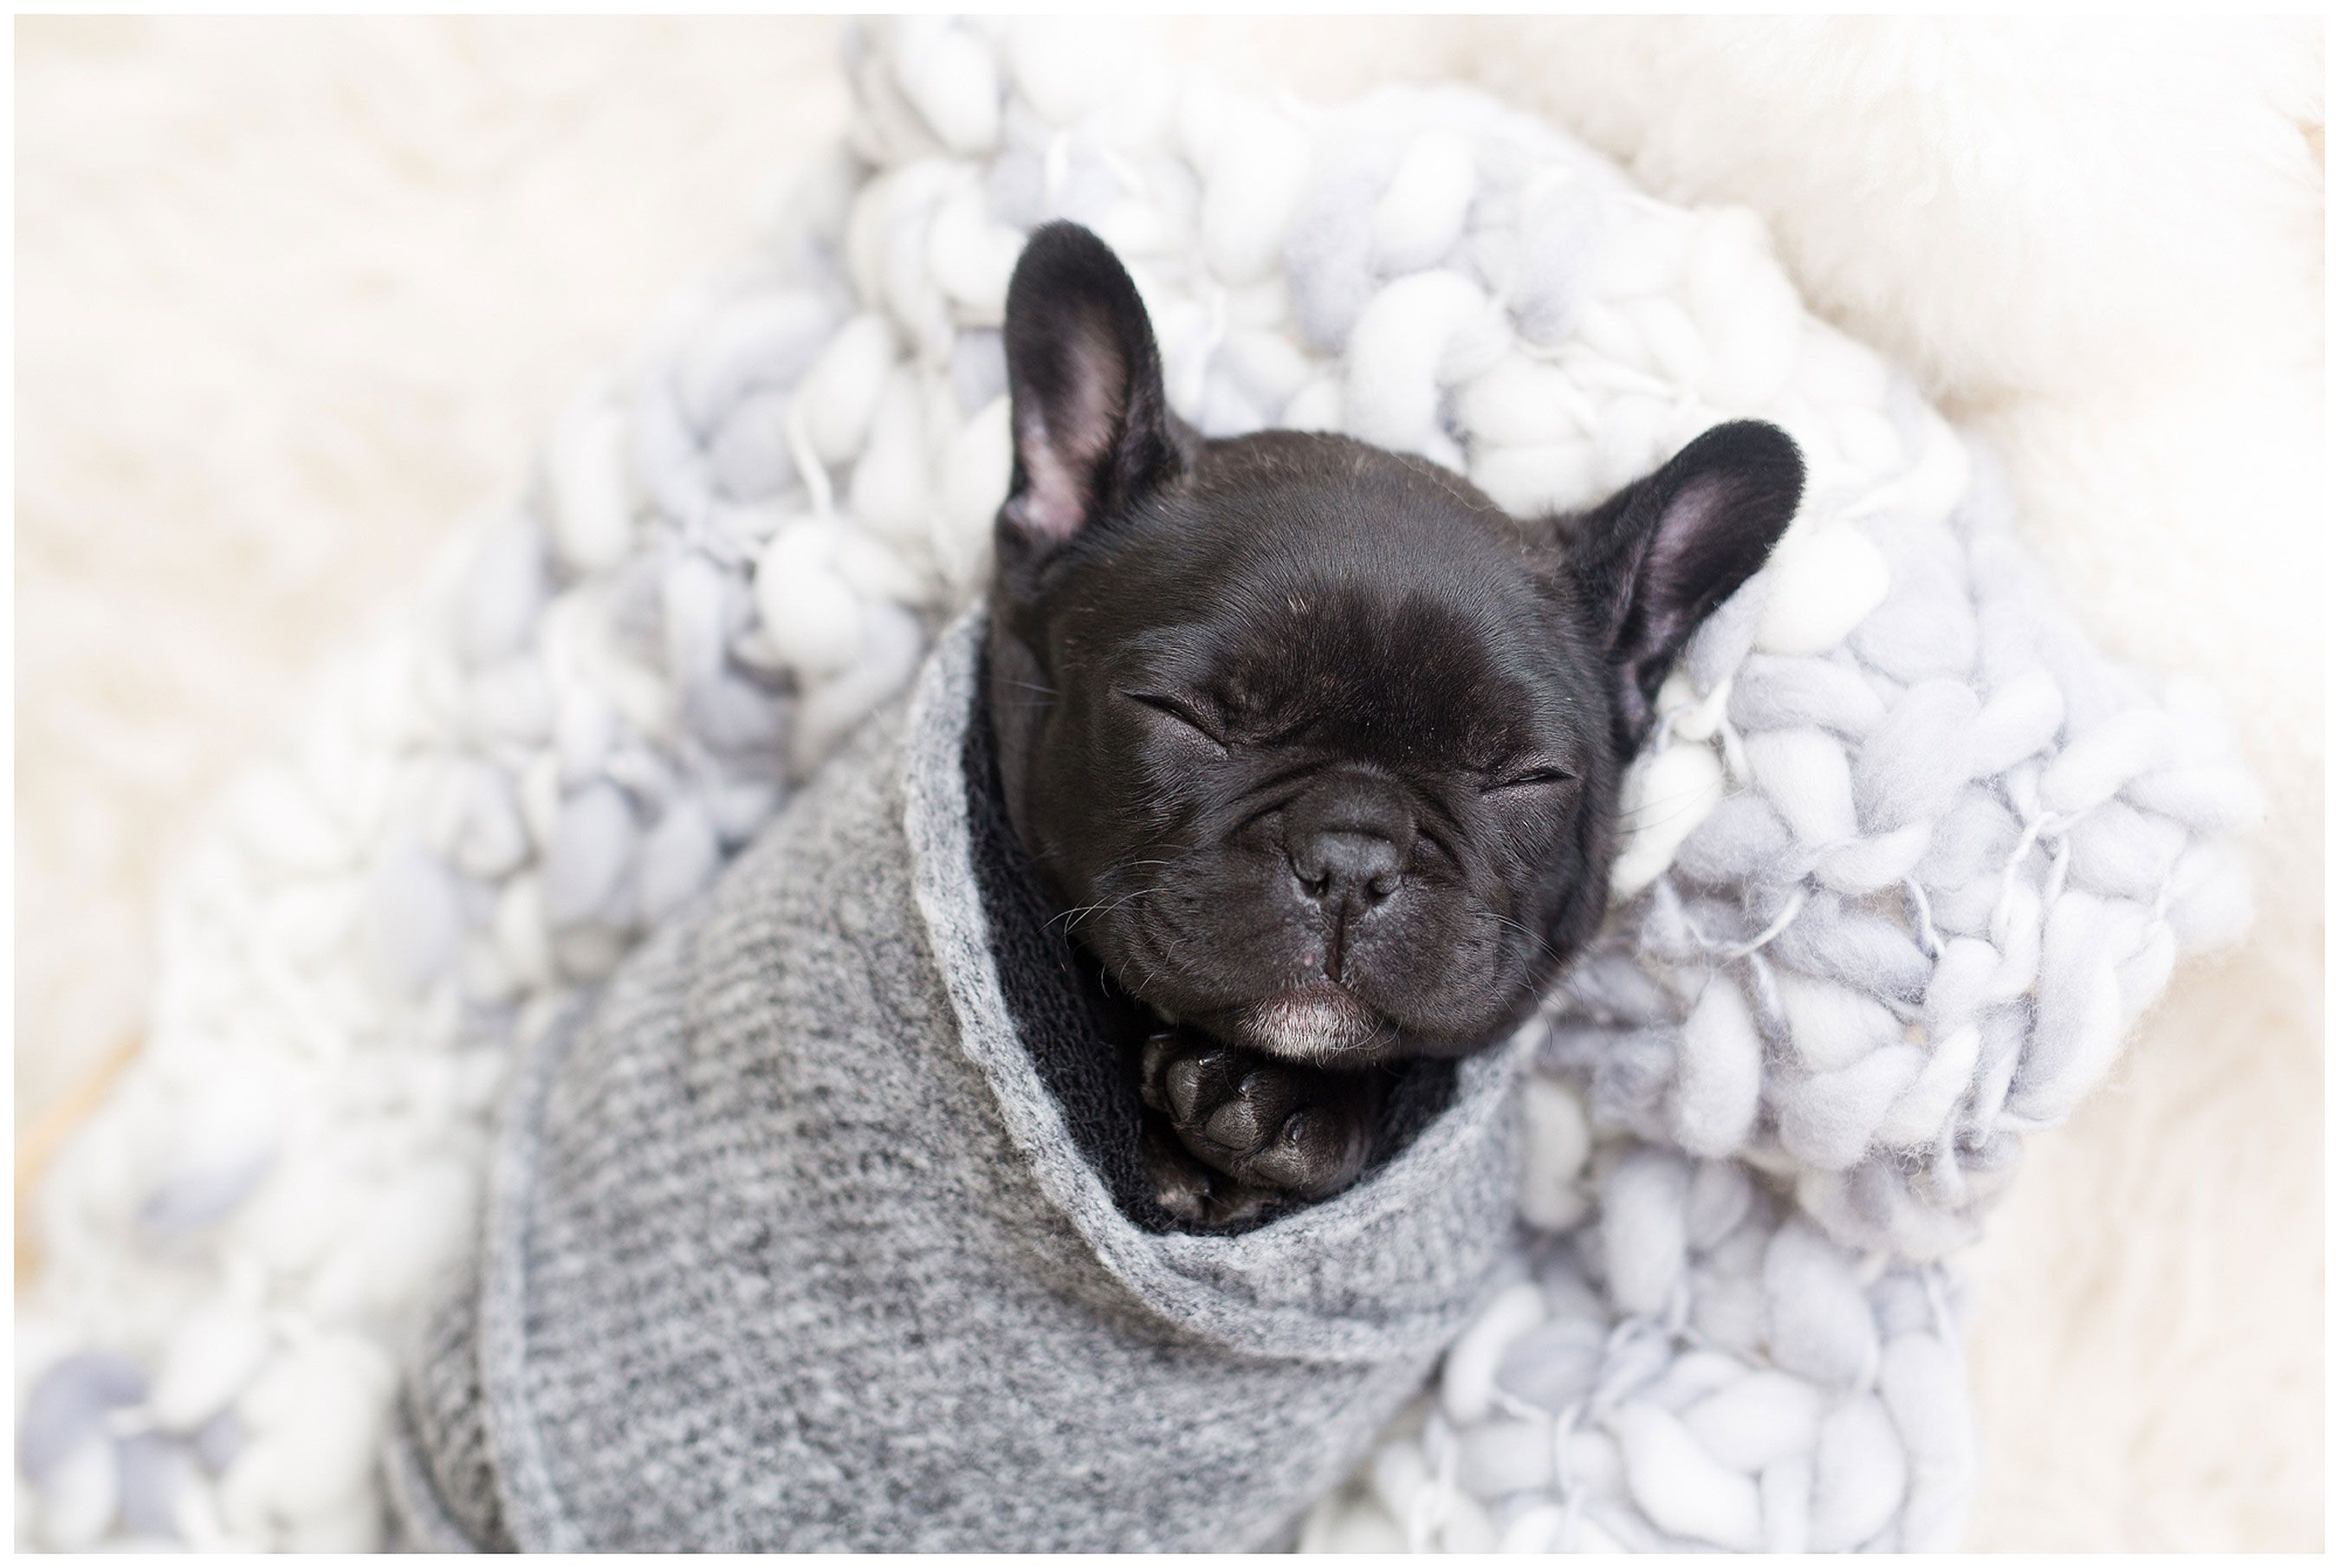 Oh Baby French Bulldog Puppy Gets Her Own Precious Newborn Photoshoot Newborn Puppies Bulldog Puppies Baby French Bulldog